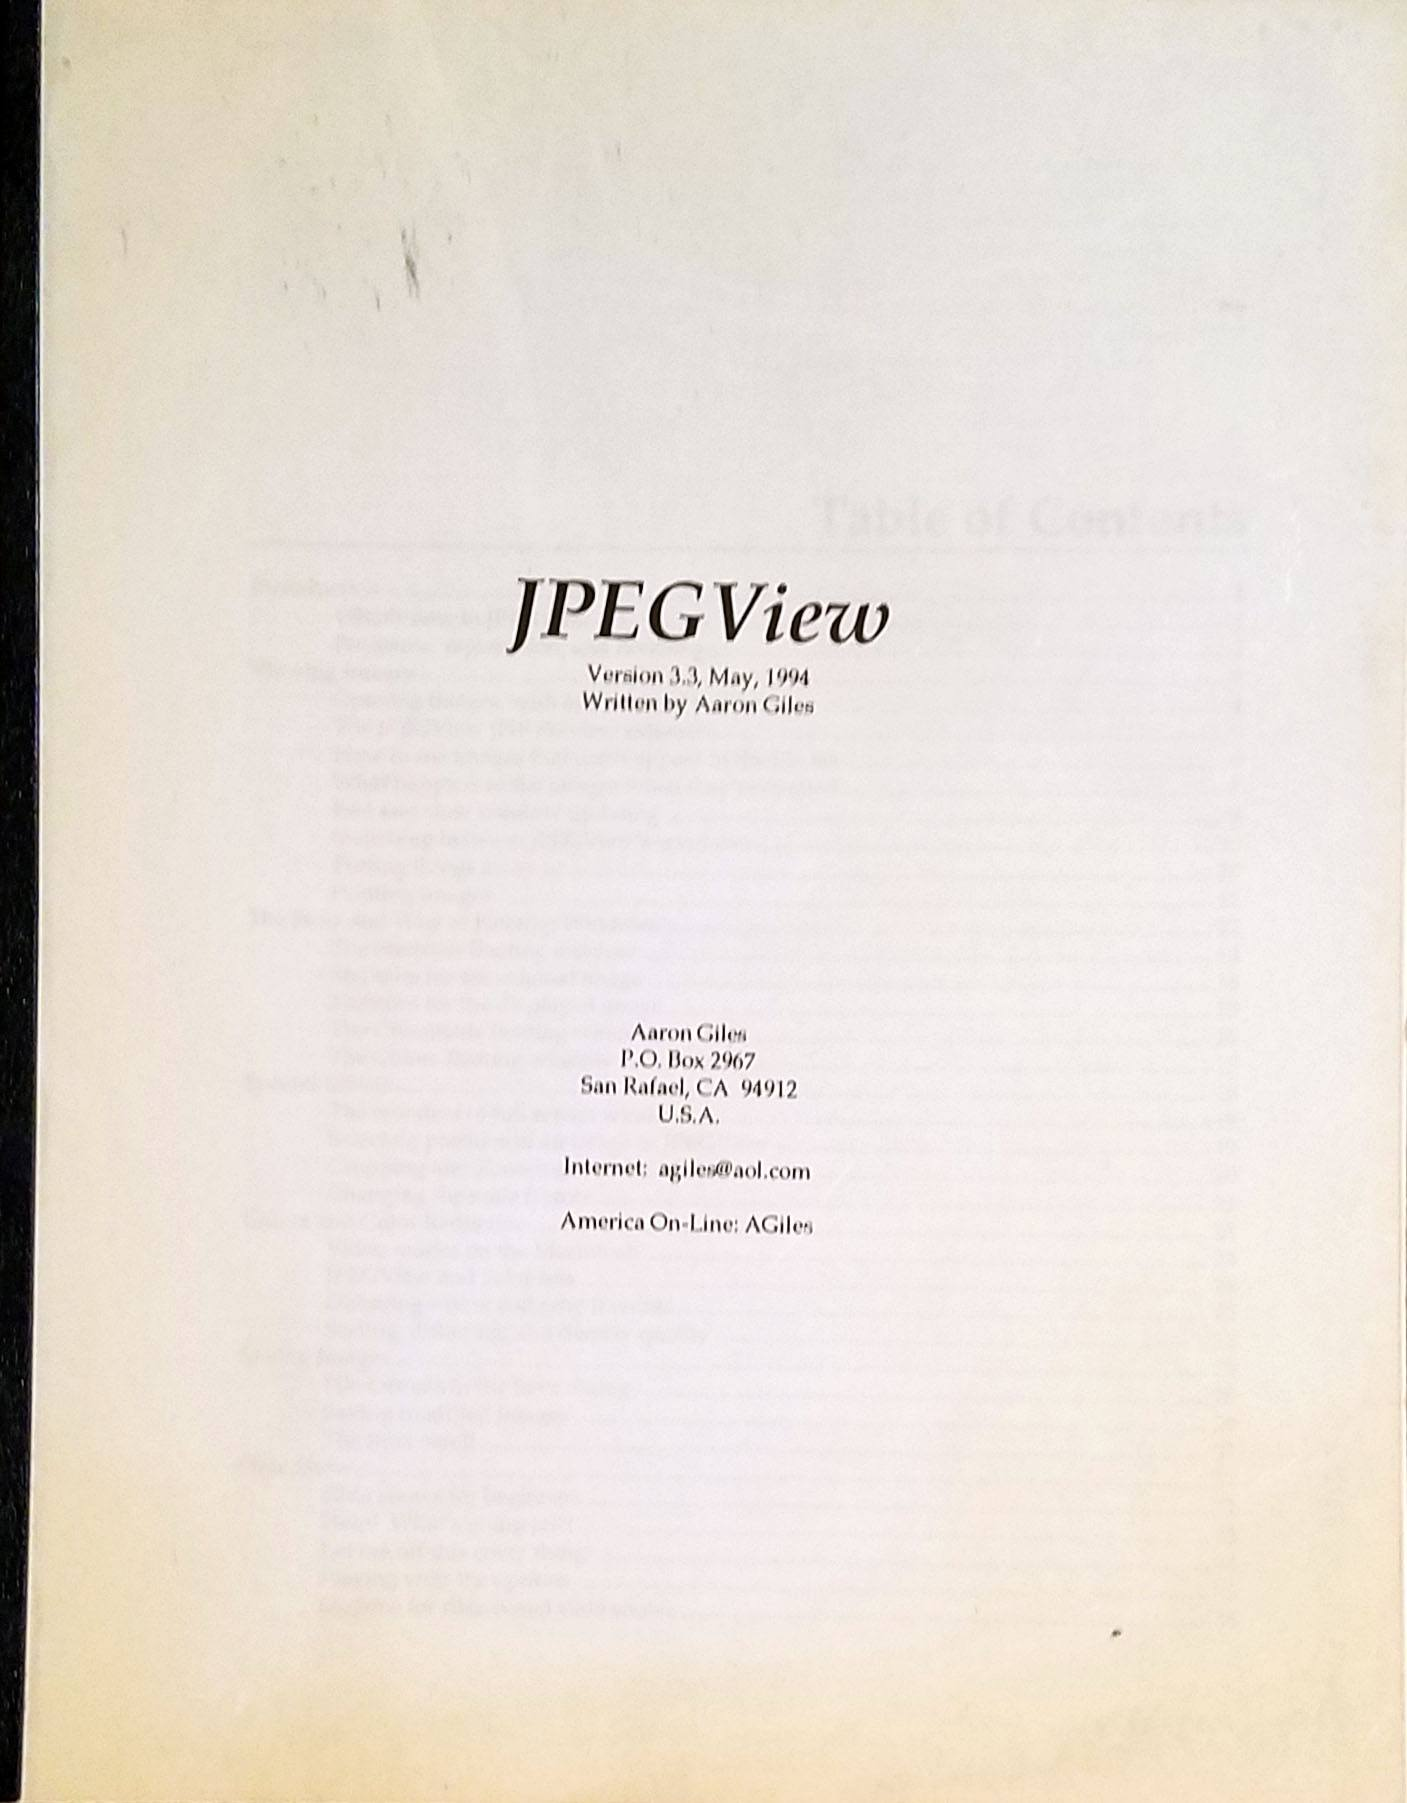 The JPEGView manual